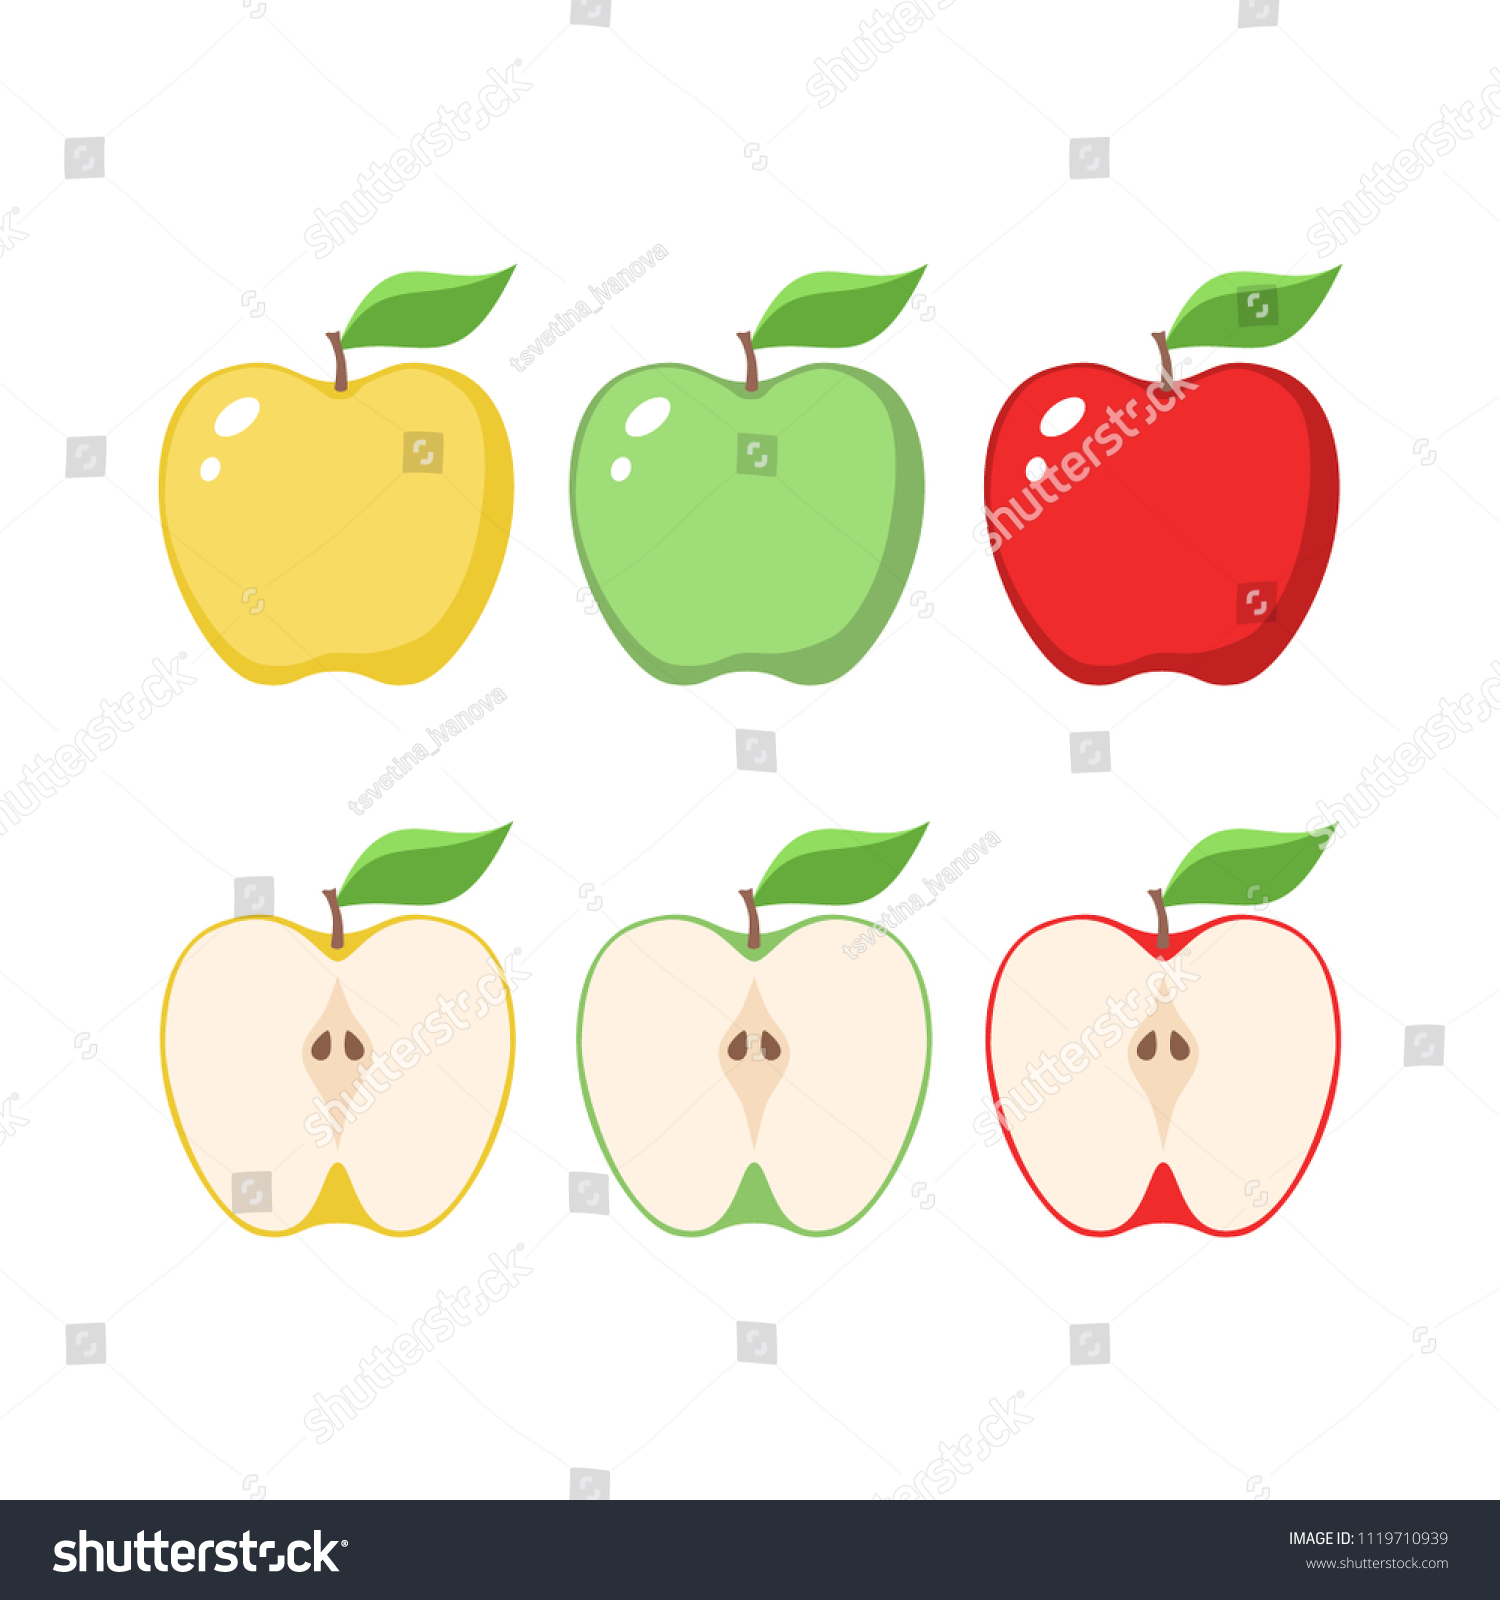 hight resolution of yellow green and red apples clipart cartoons sliced apple